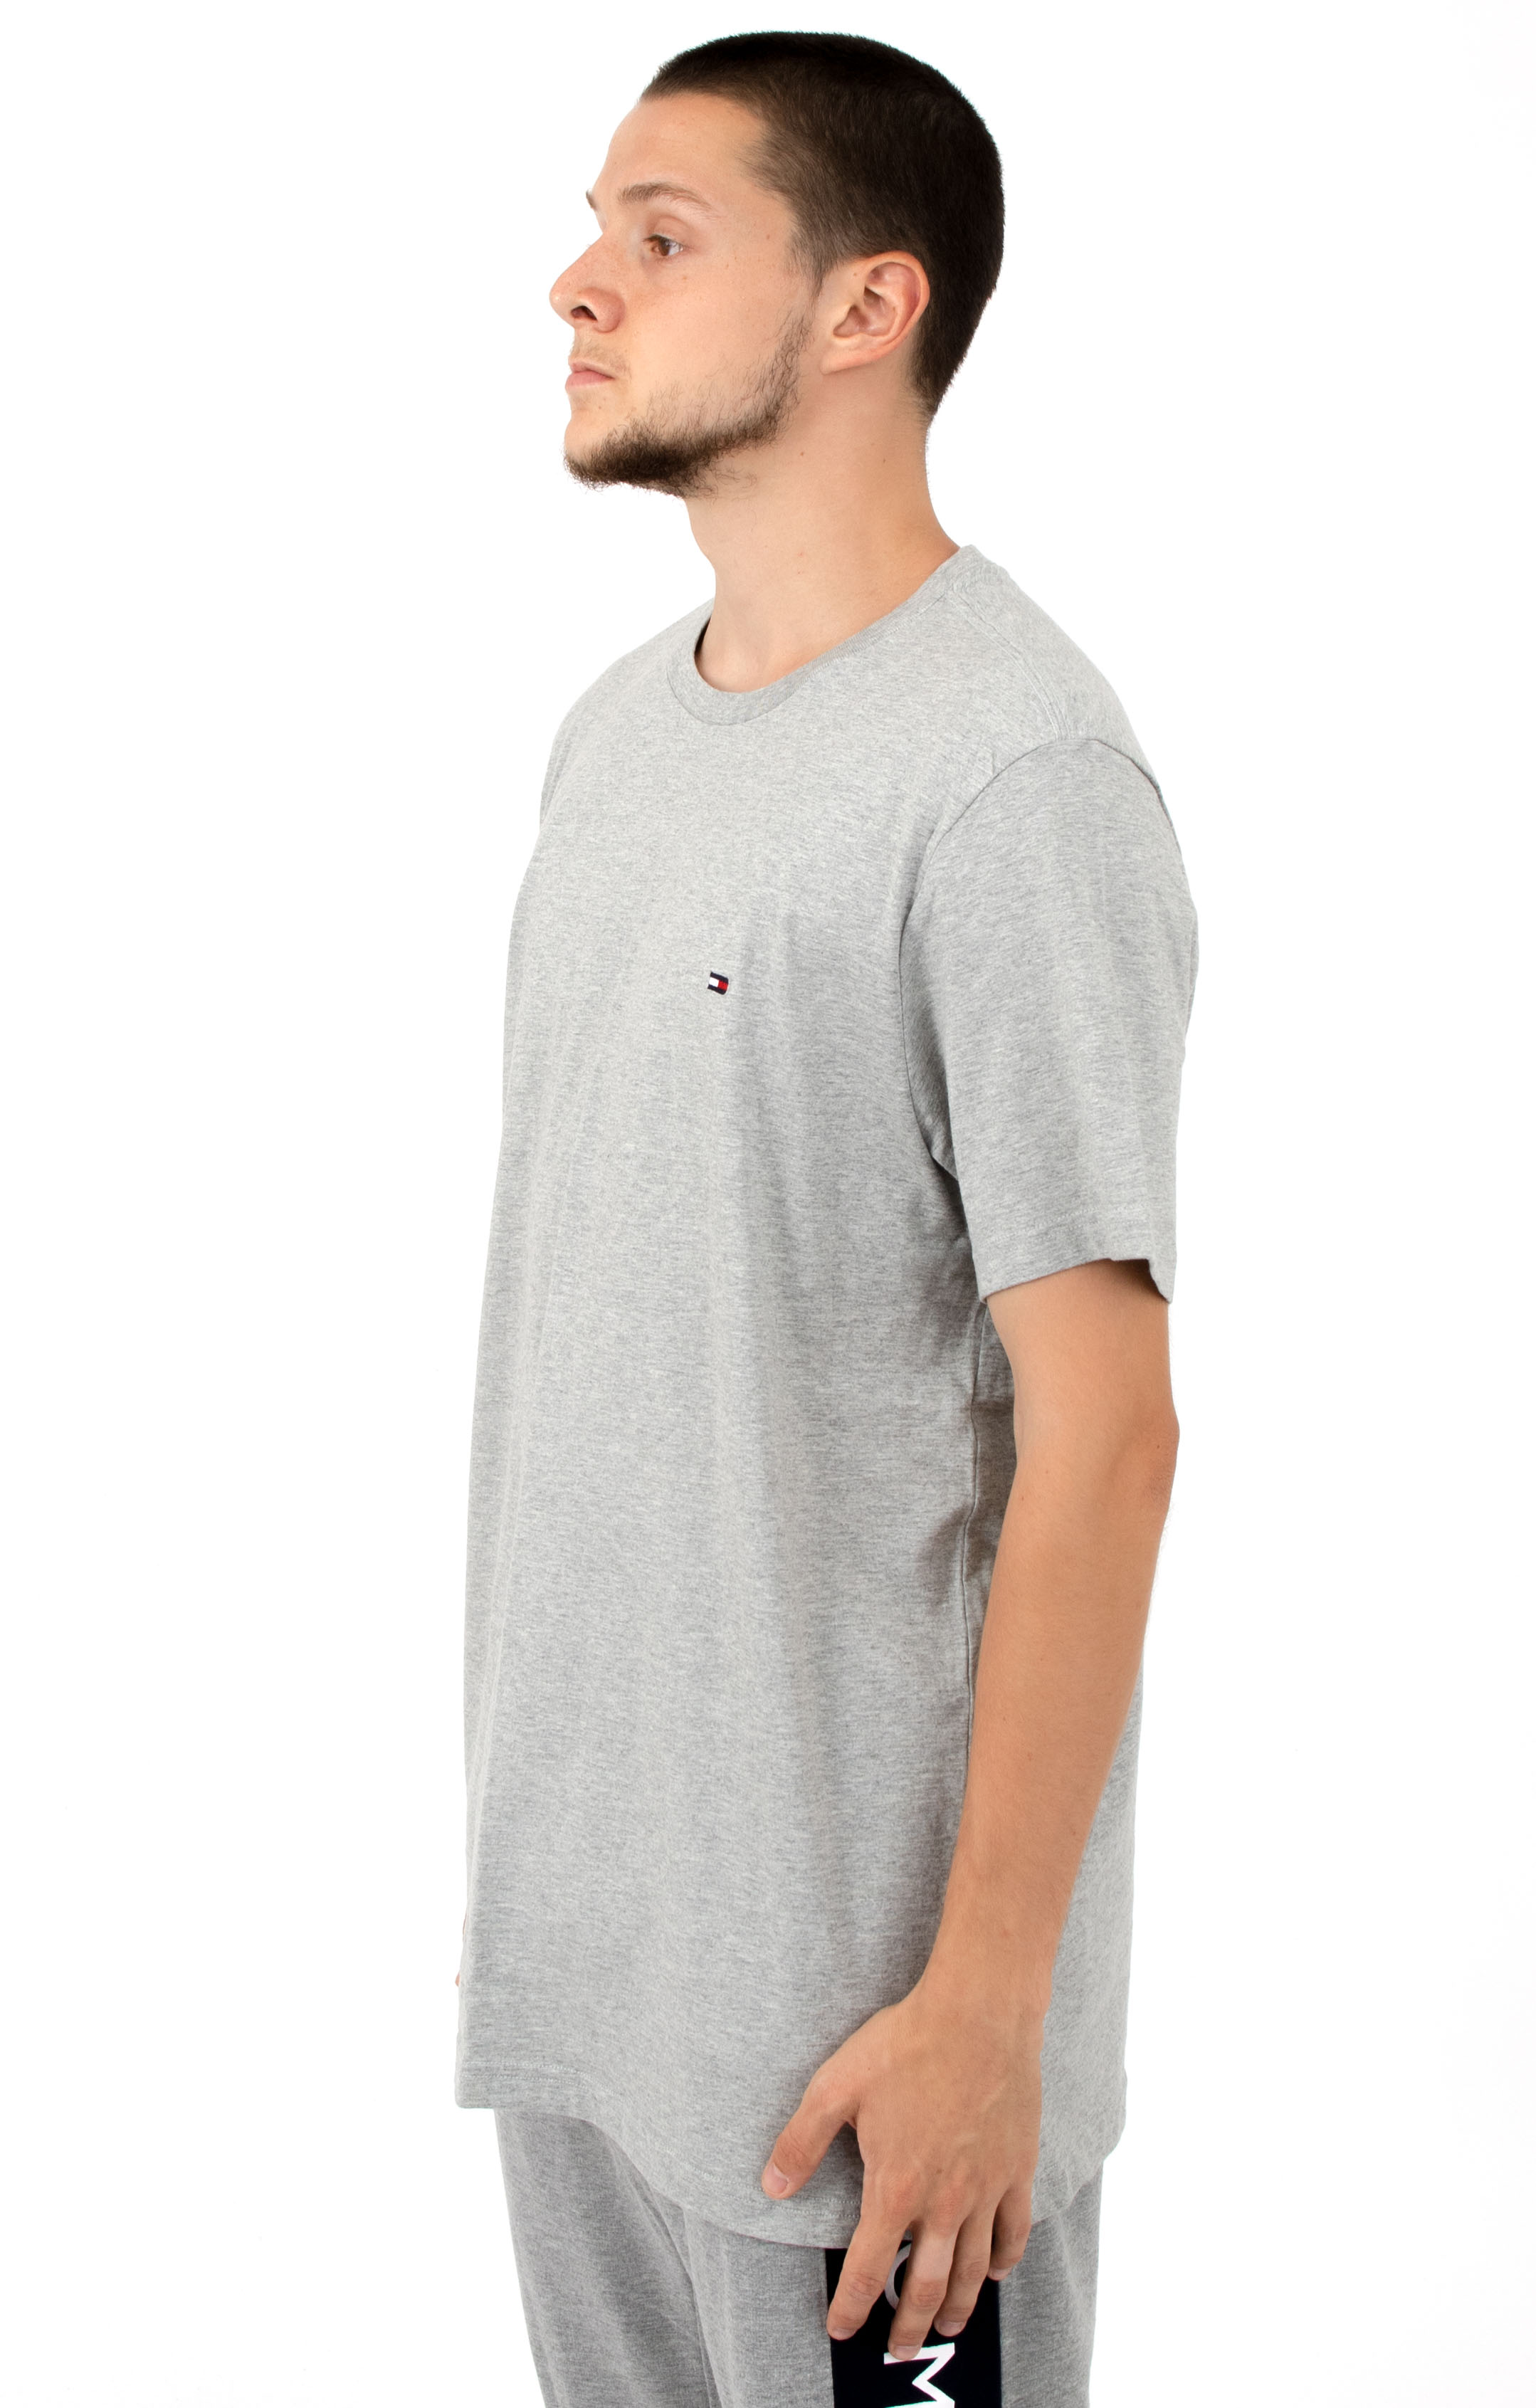 Core Flag Crew T-Shirt - Heather Grey 2